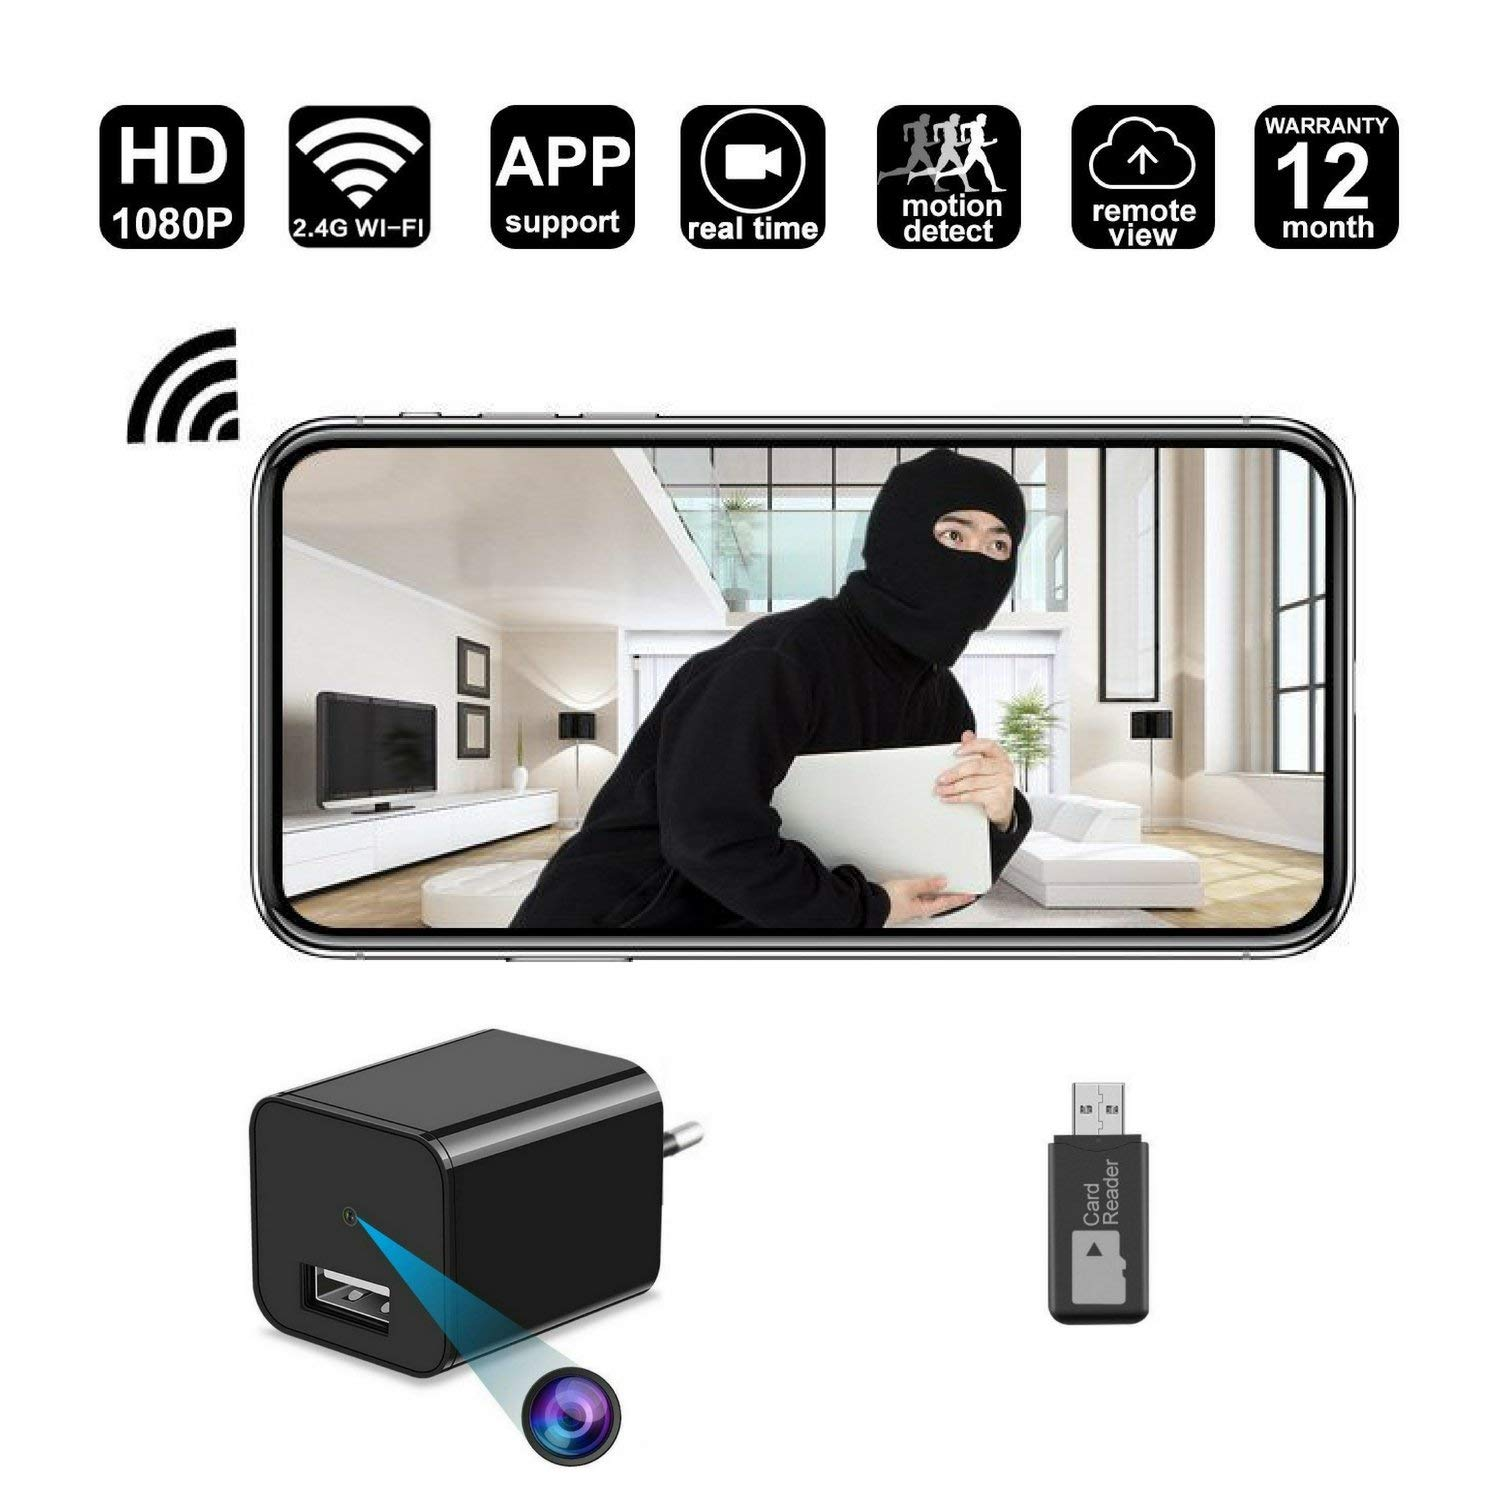 Eagle Eye Gadgets 1920P x 1080P HD USB Wall Charger Hidden Spy Camera with  WiFi for Security Surveillance (Black)